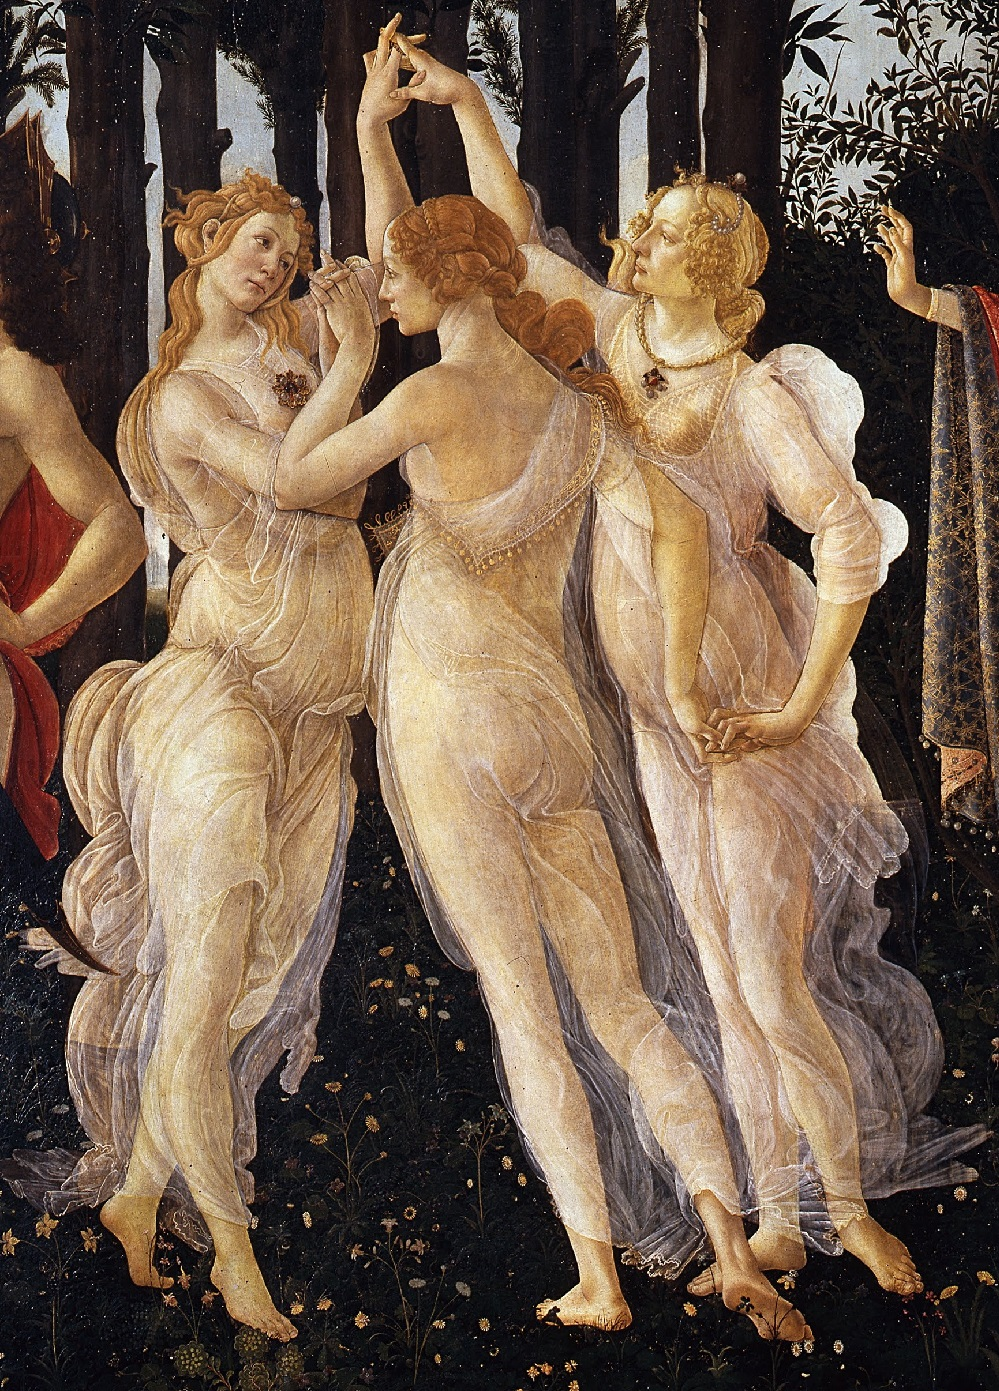 https://en.wikipedia.org/wiki/File:Sandro_Botticelli_-_Three_Graces_in_Primavera.jpg